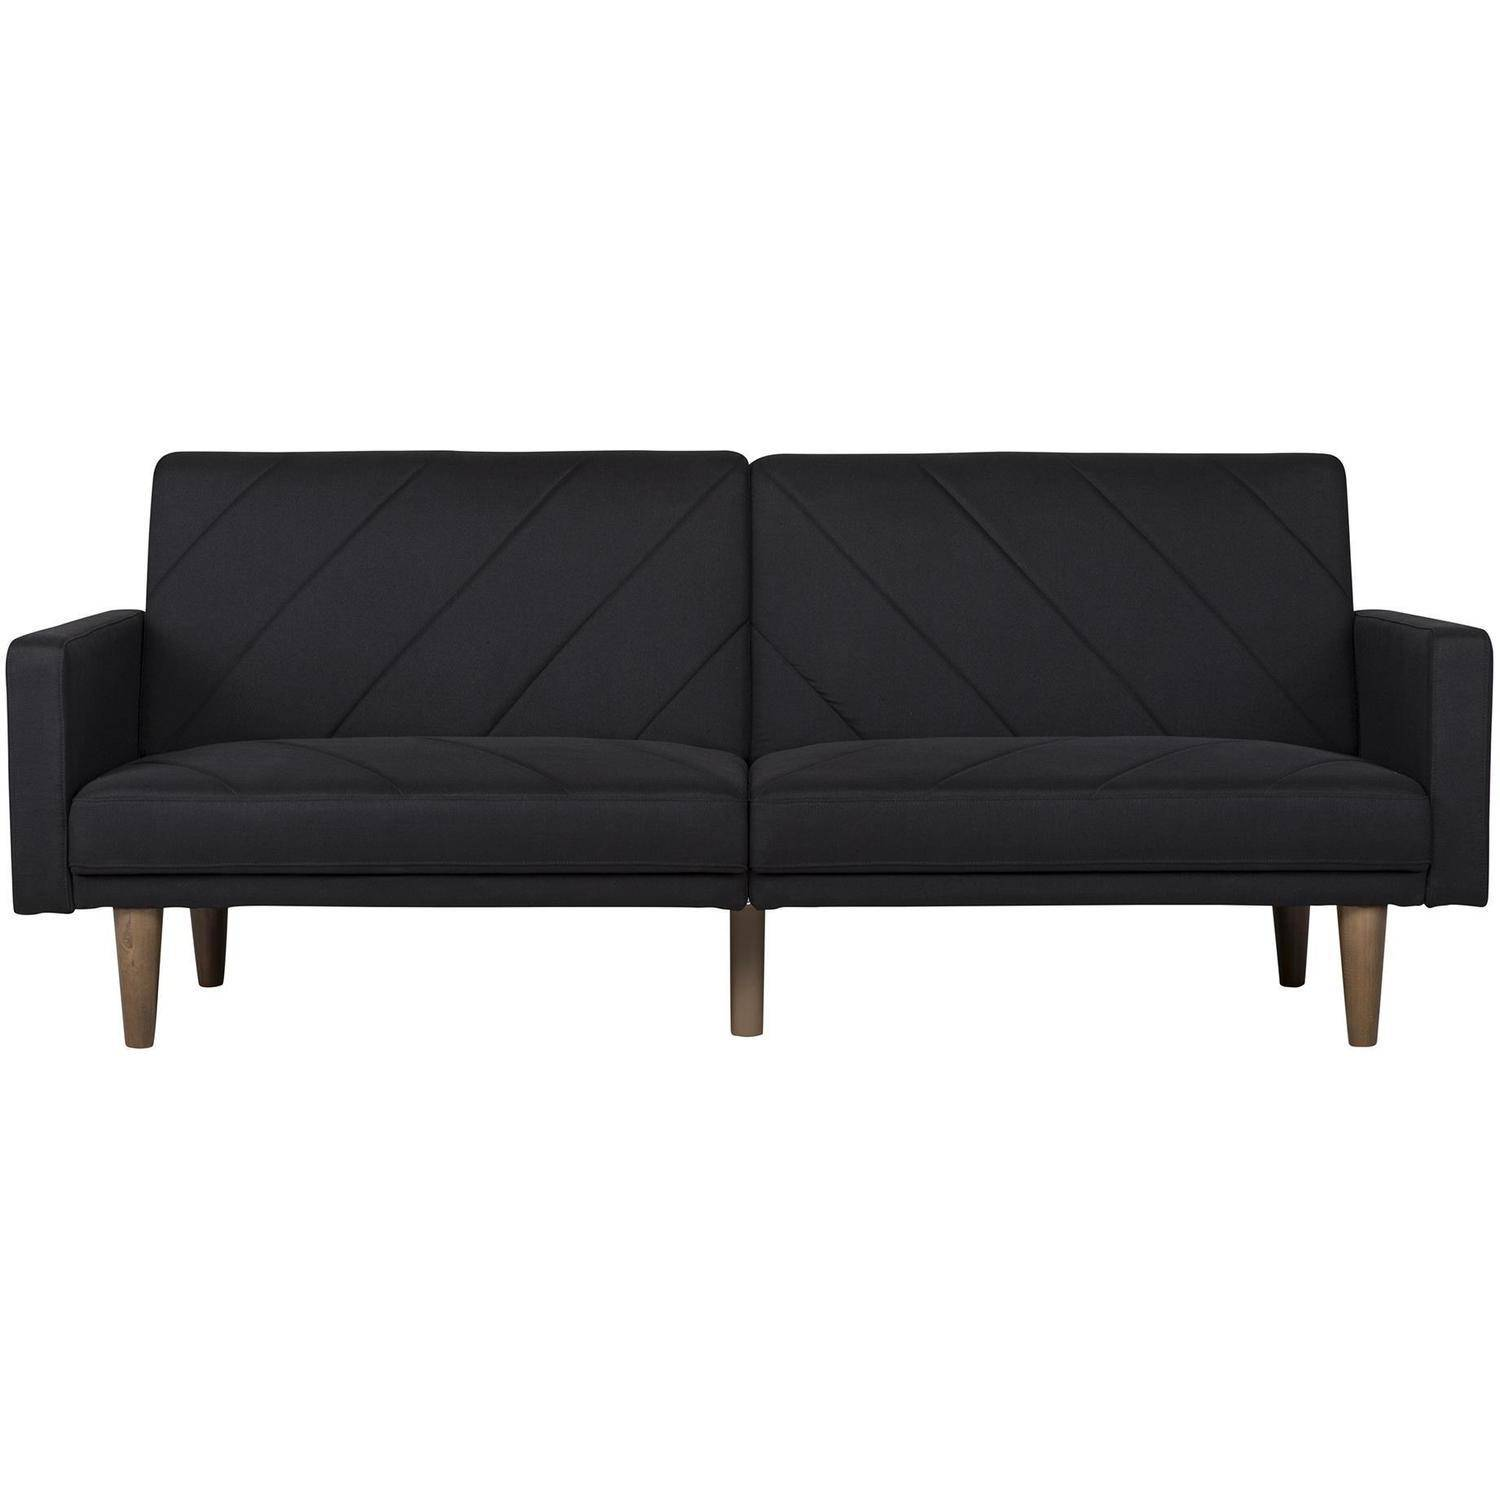 DHP Paxson Linen Futon with Mid-Century Style, Multiple Colors by Dorel Home Products